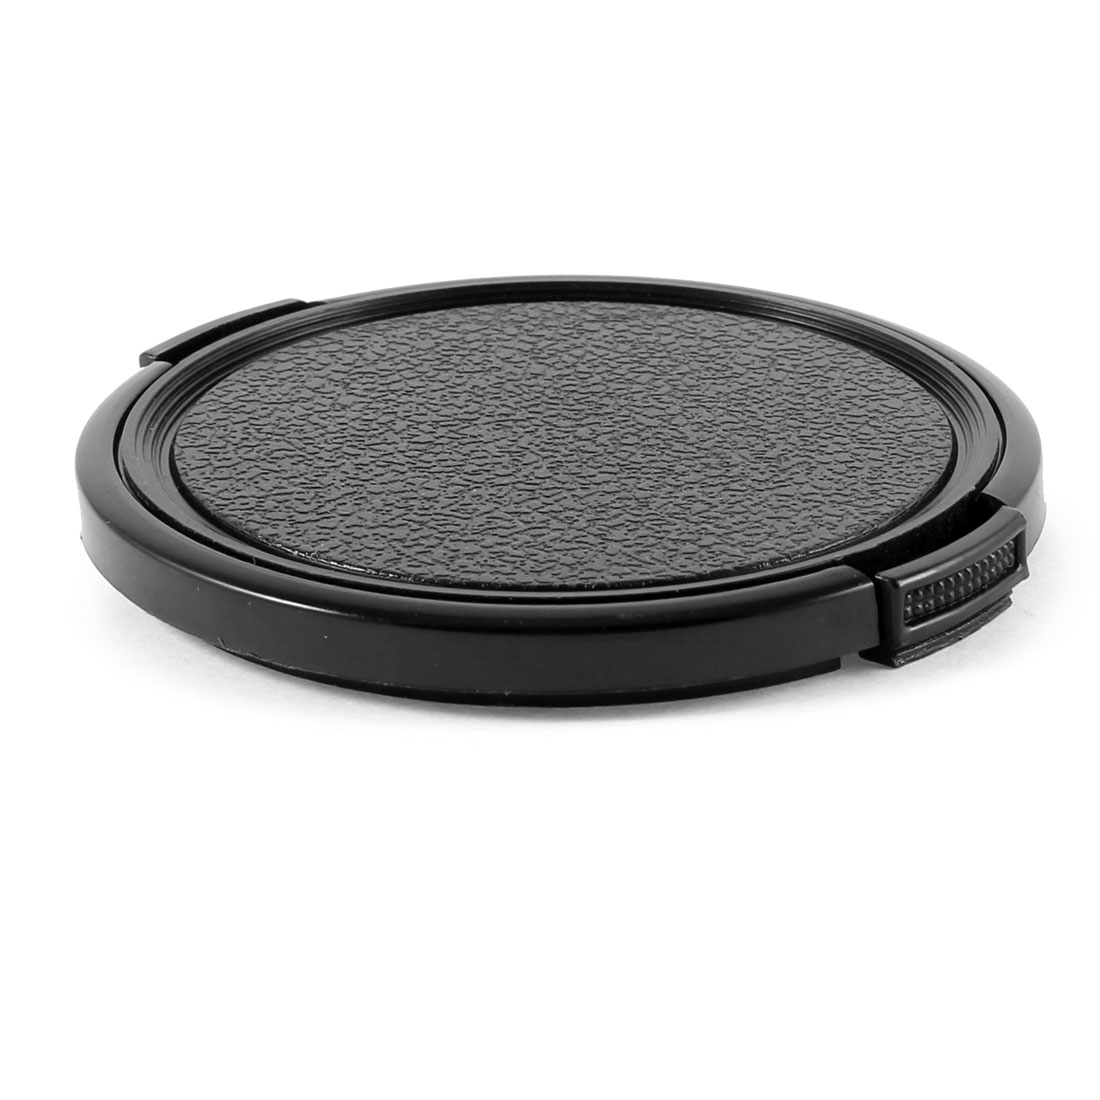 Univeral Camera 67mm Front Cap Cover for Lens Filter